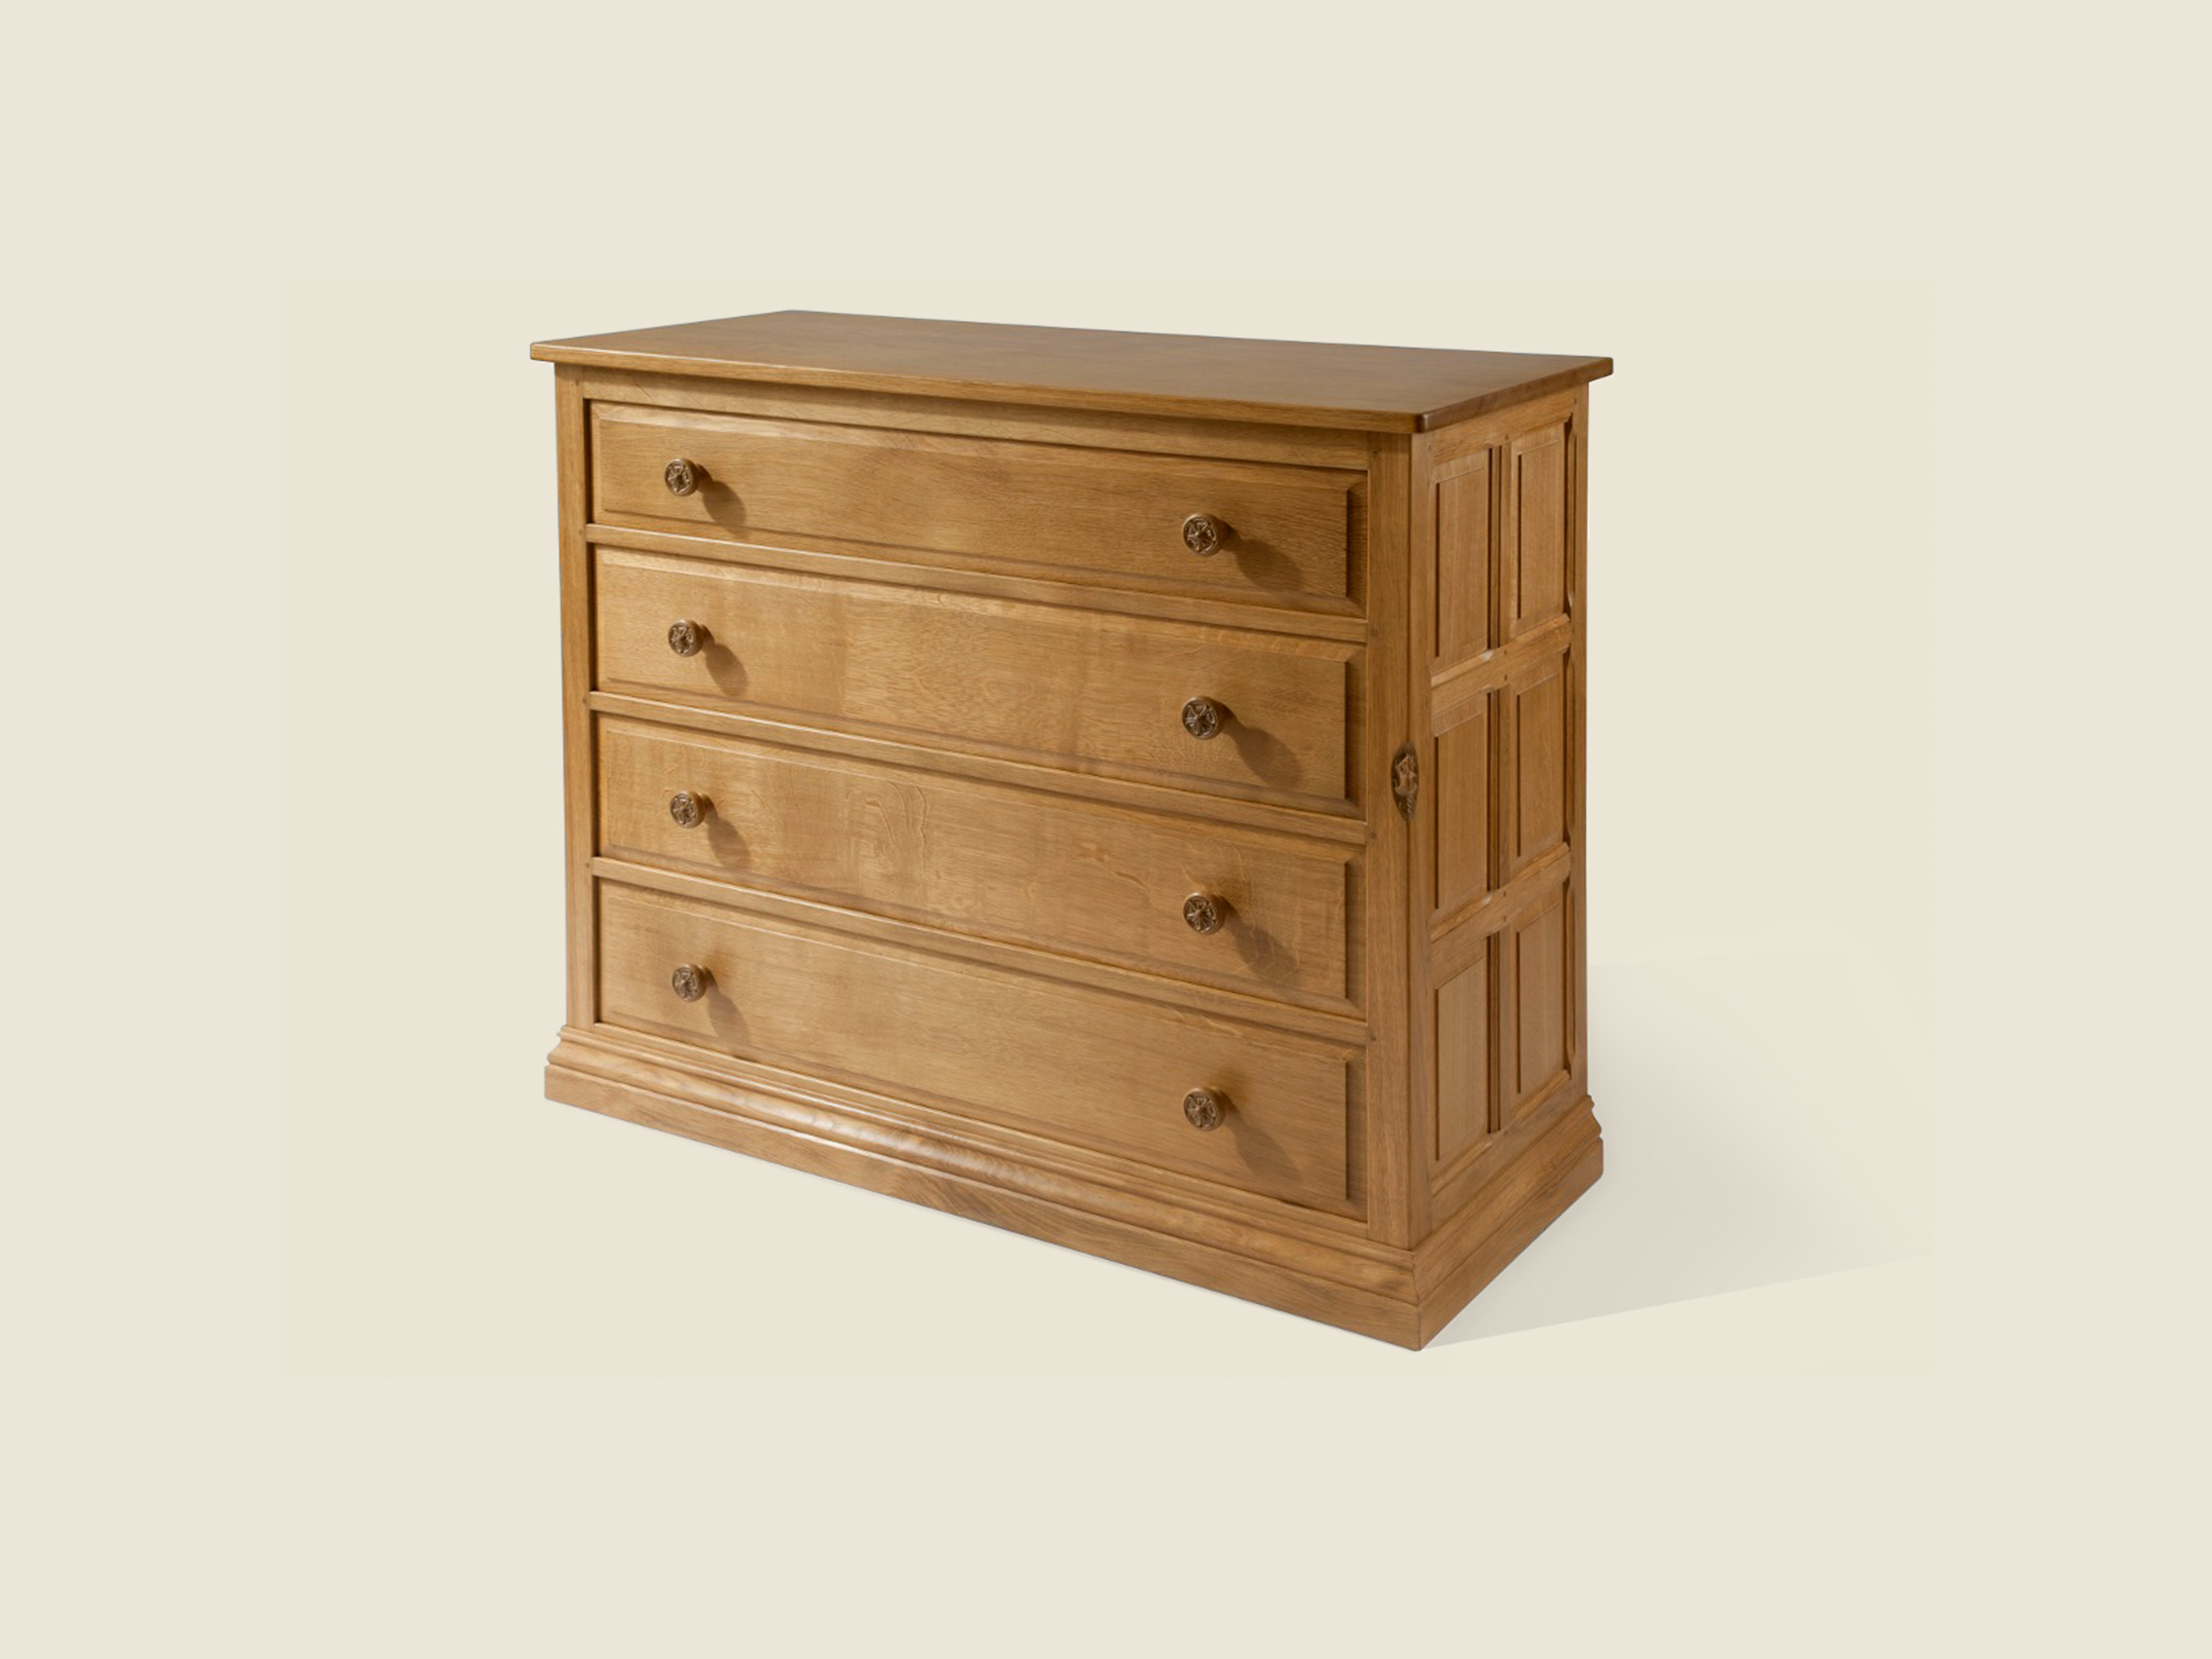 BFB_0000s_0007_bfb_008_solid_oak_chest_of-drawers.jpg.png